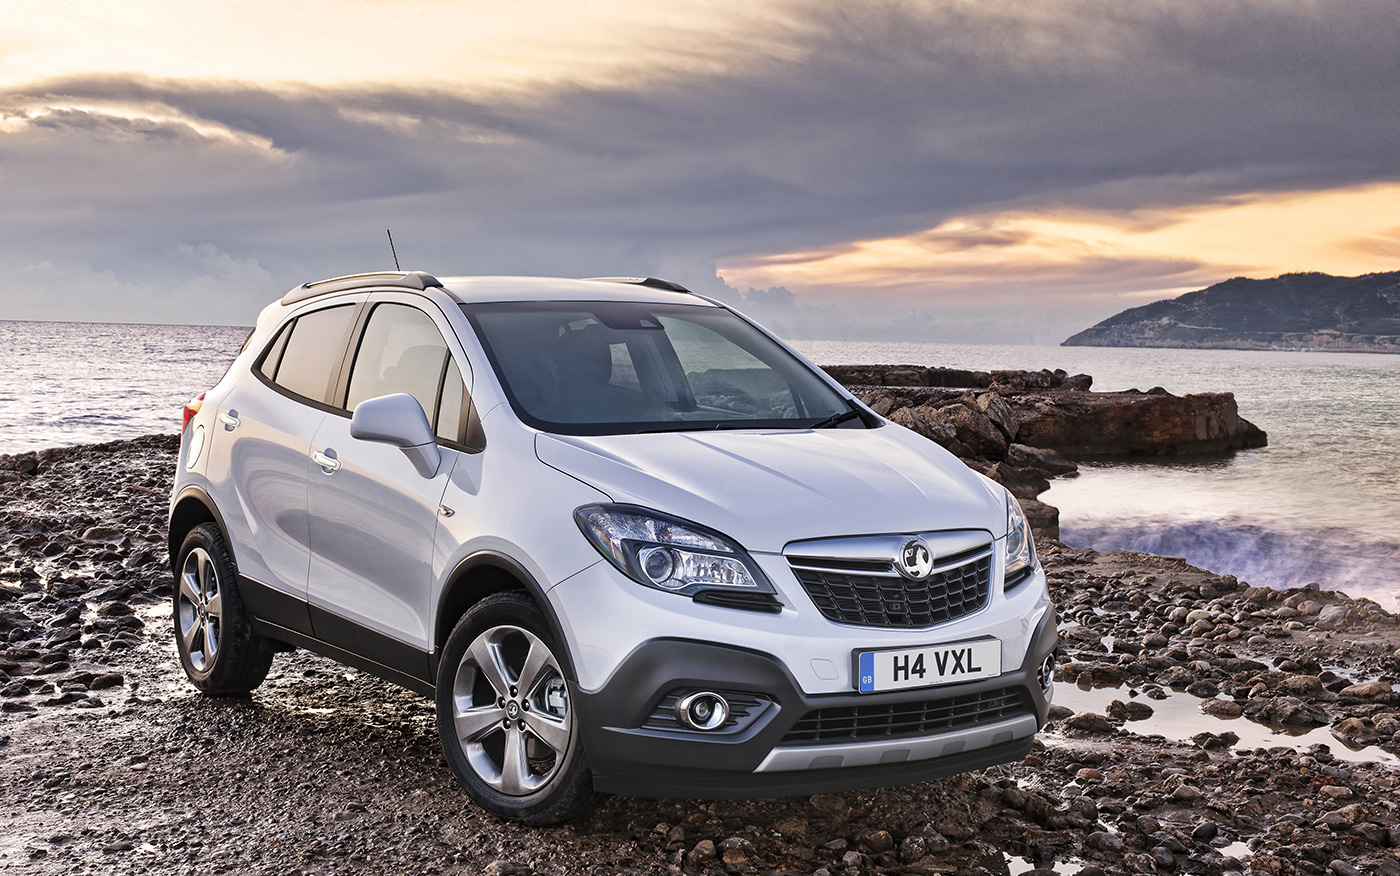 vauxhall mokka 5 door suv 1 6 cdti se 136ps 4x4 start stop with motability. Black Bedroom Furniture Sets. Home Design Ideas